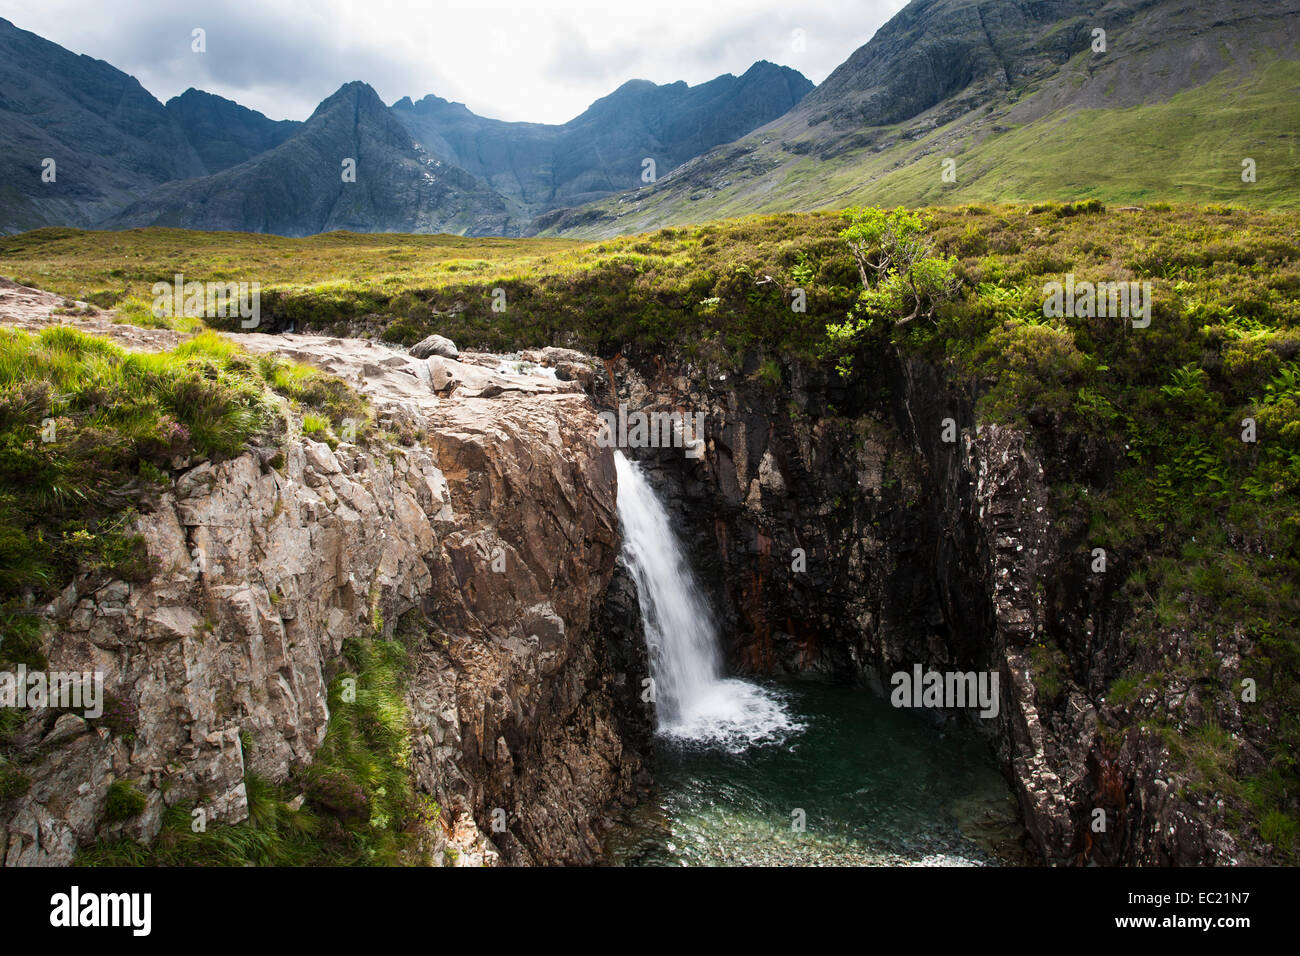 Waterfall at the Fairy Pools in Glen Brittle with Cuillin Hills behind, Isle of Skye, Scotland, United Kingdom - Stock Image